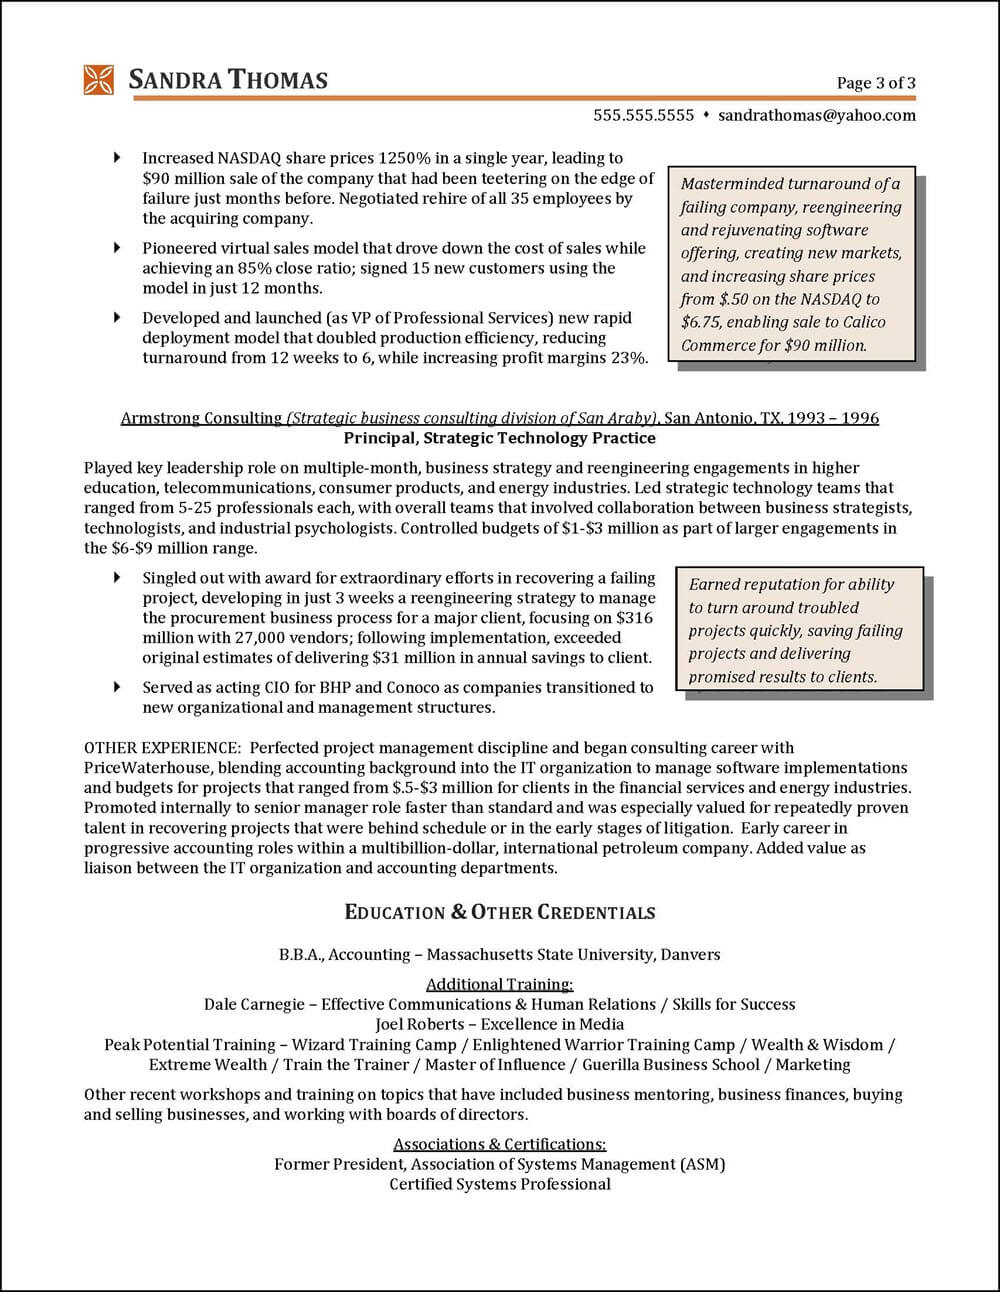 Example C-Level Executive Resume High-Tech pg 3